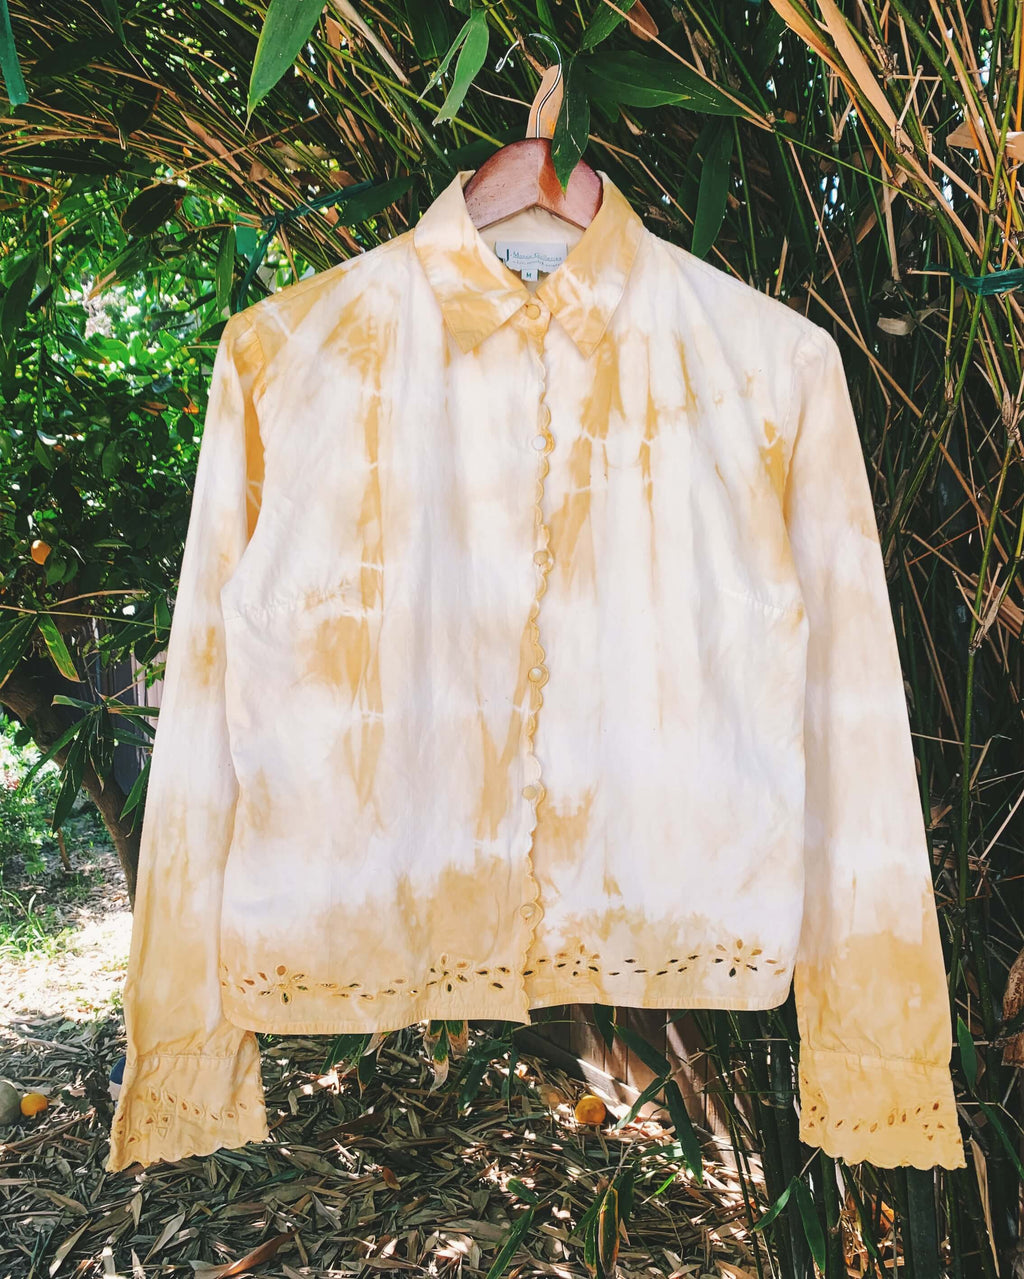 Natural Dyed Vintage Cotton Blouse - Onion